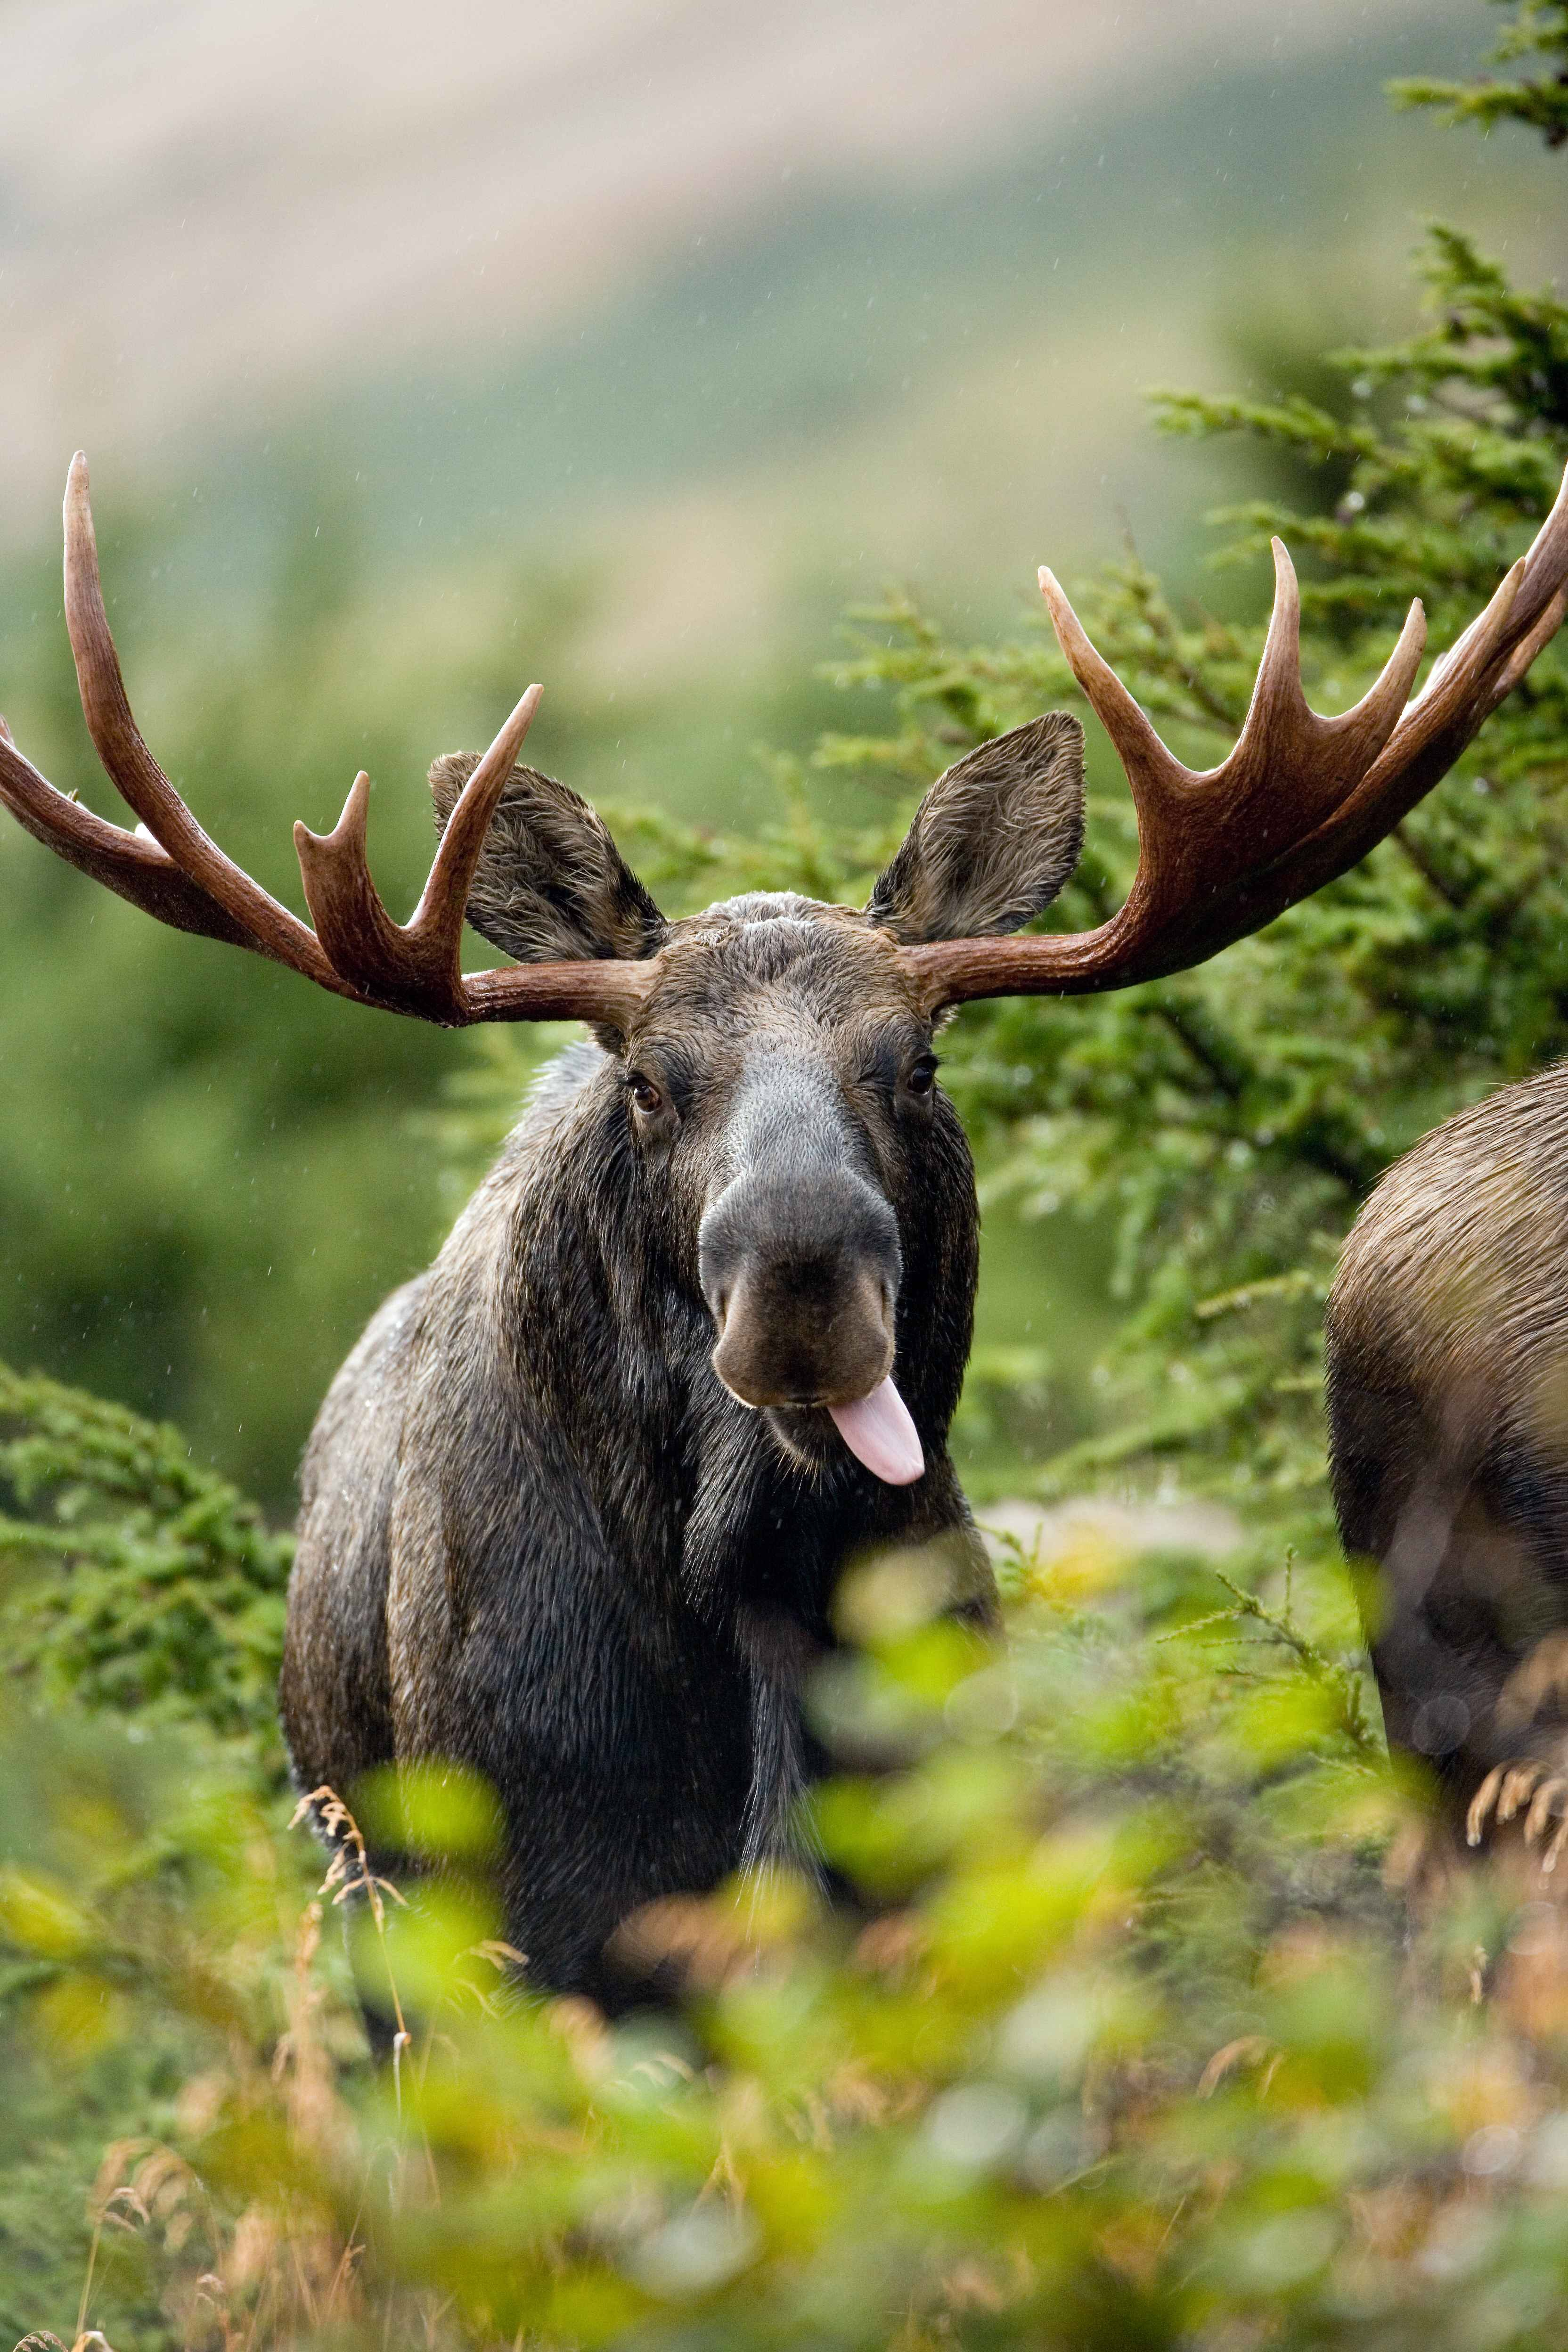 Alces Alces Alces alces also known as the